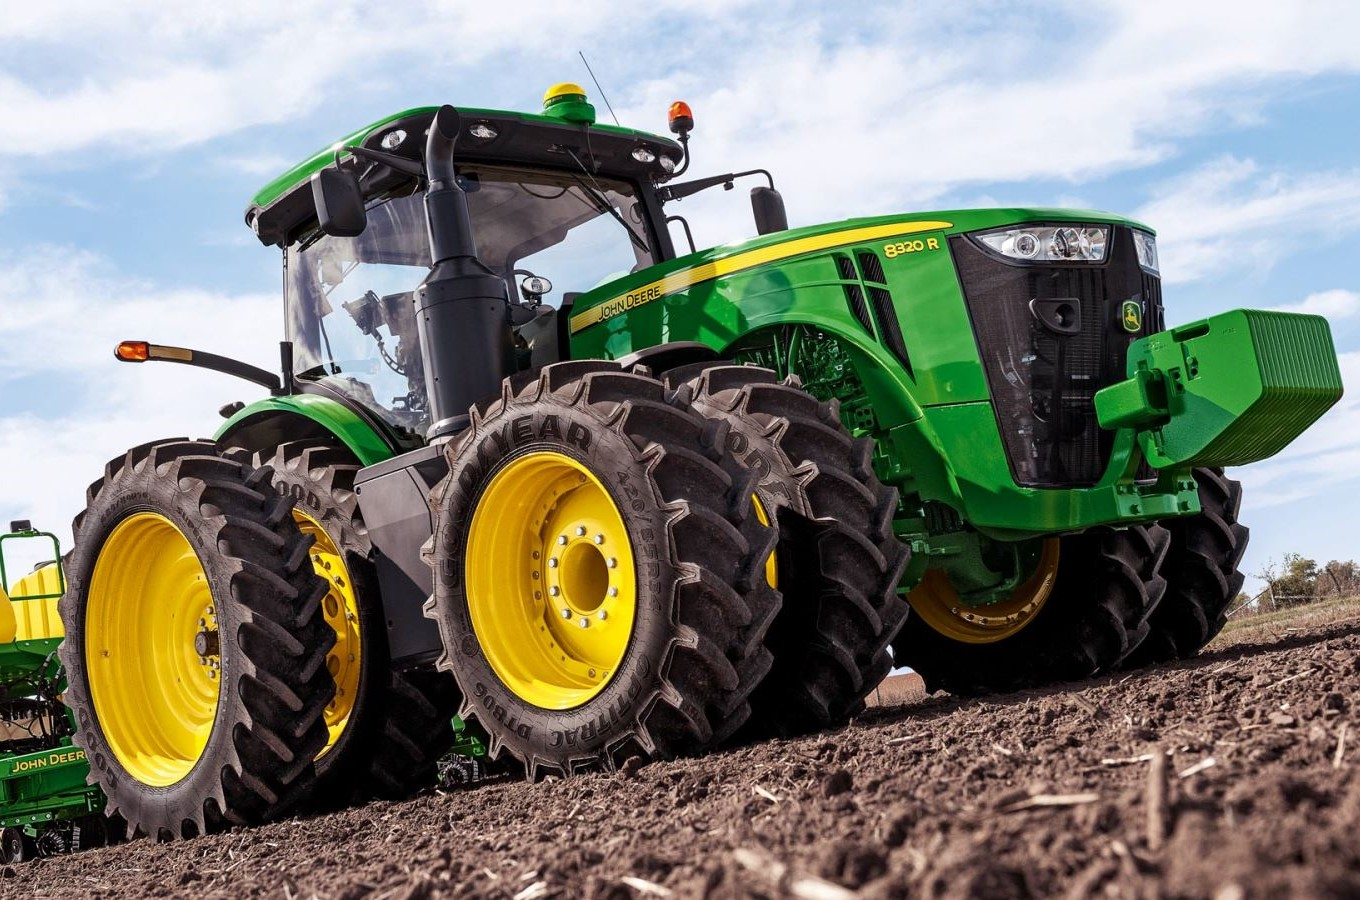 GPS Tracking for Farm Equipment